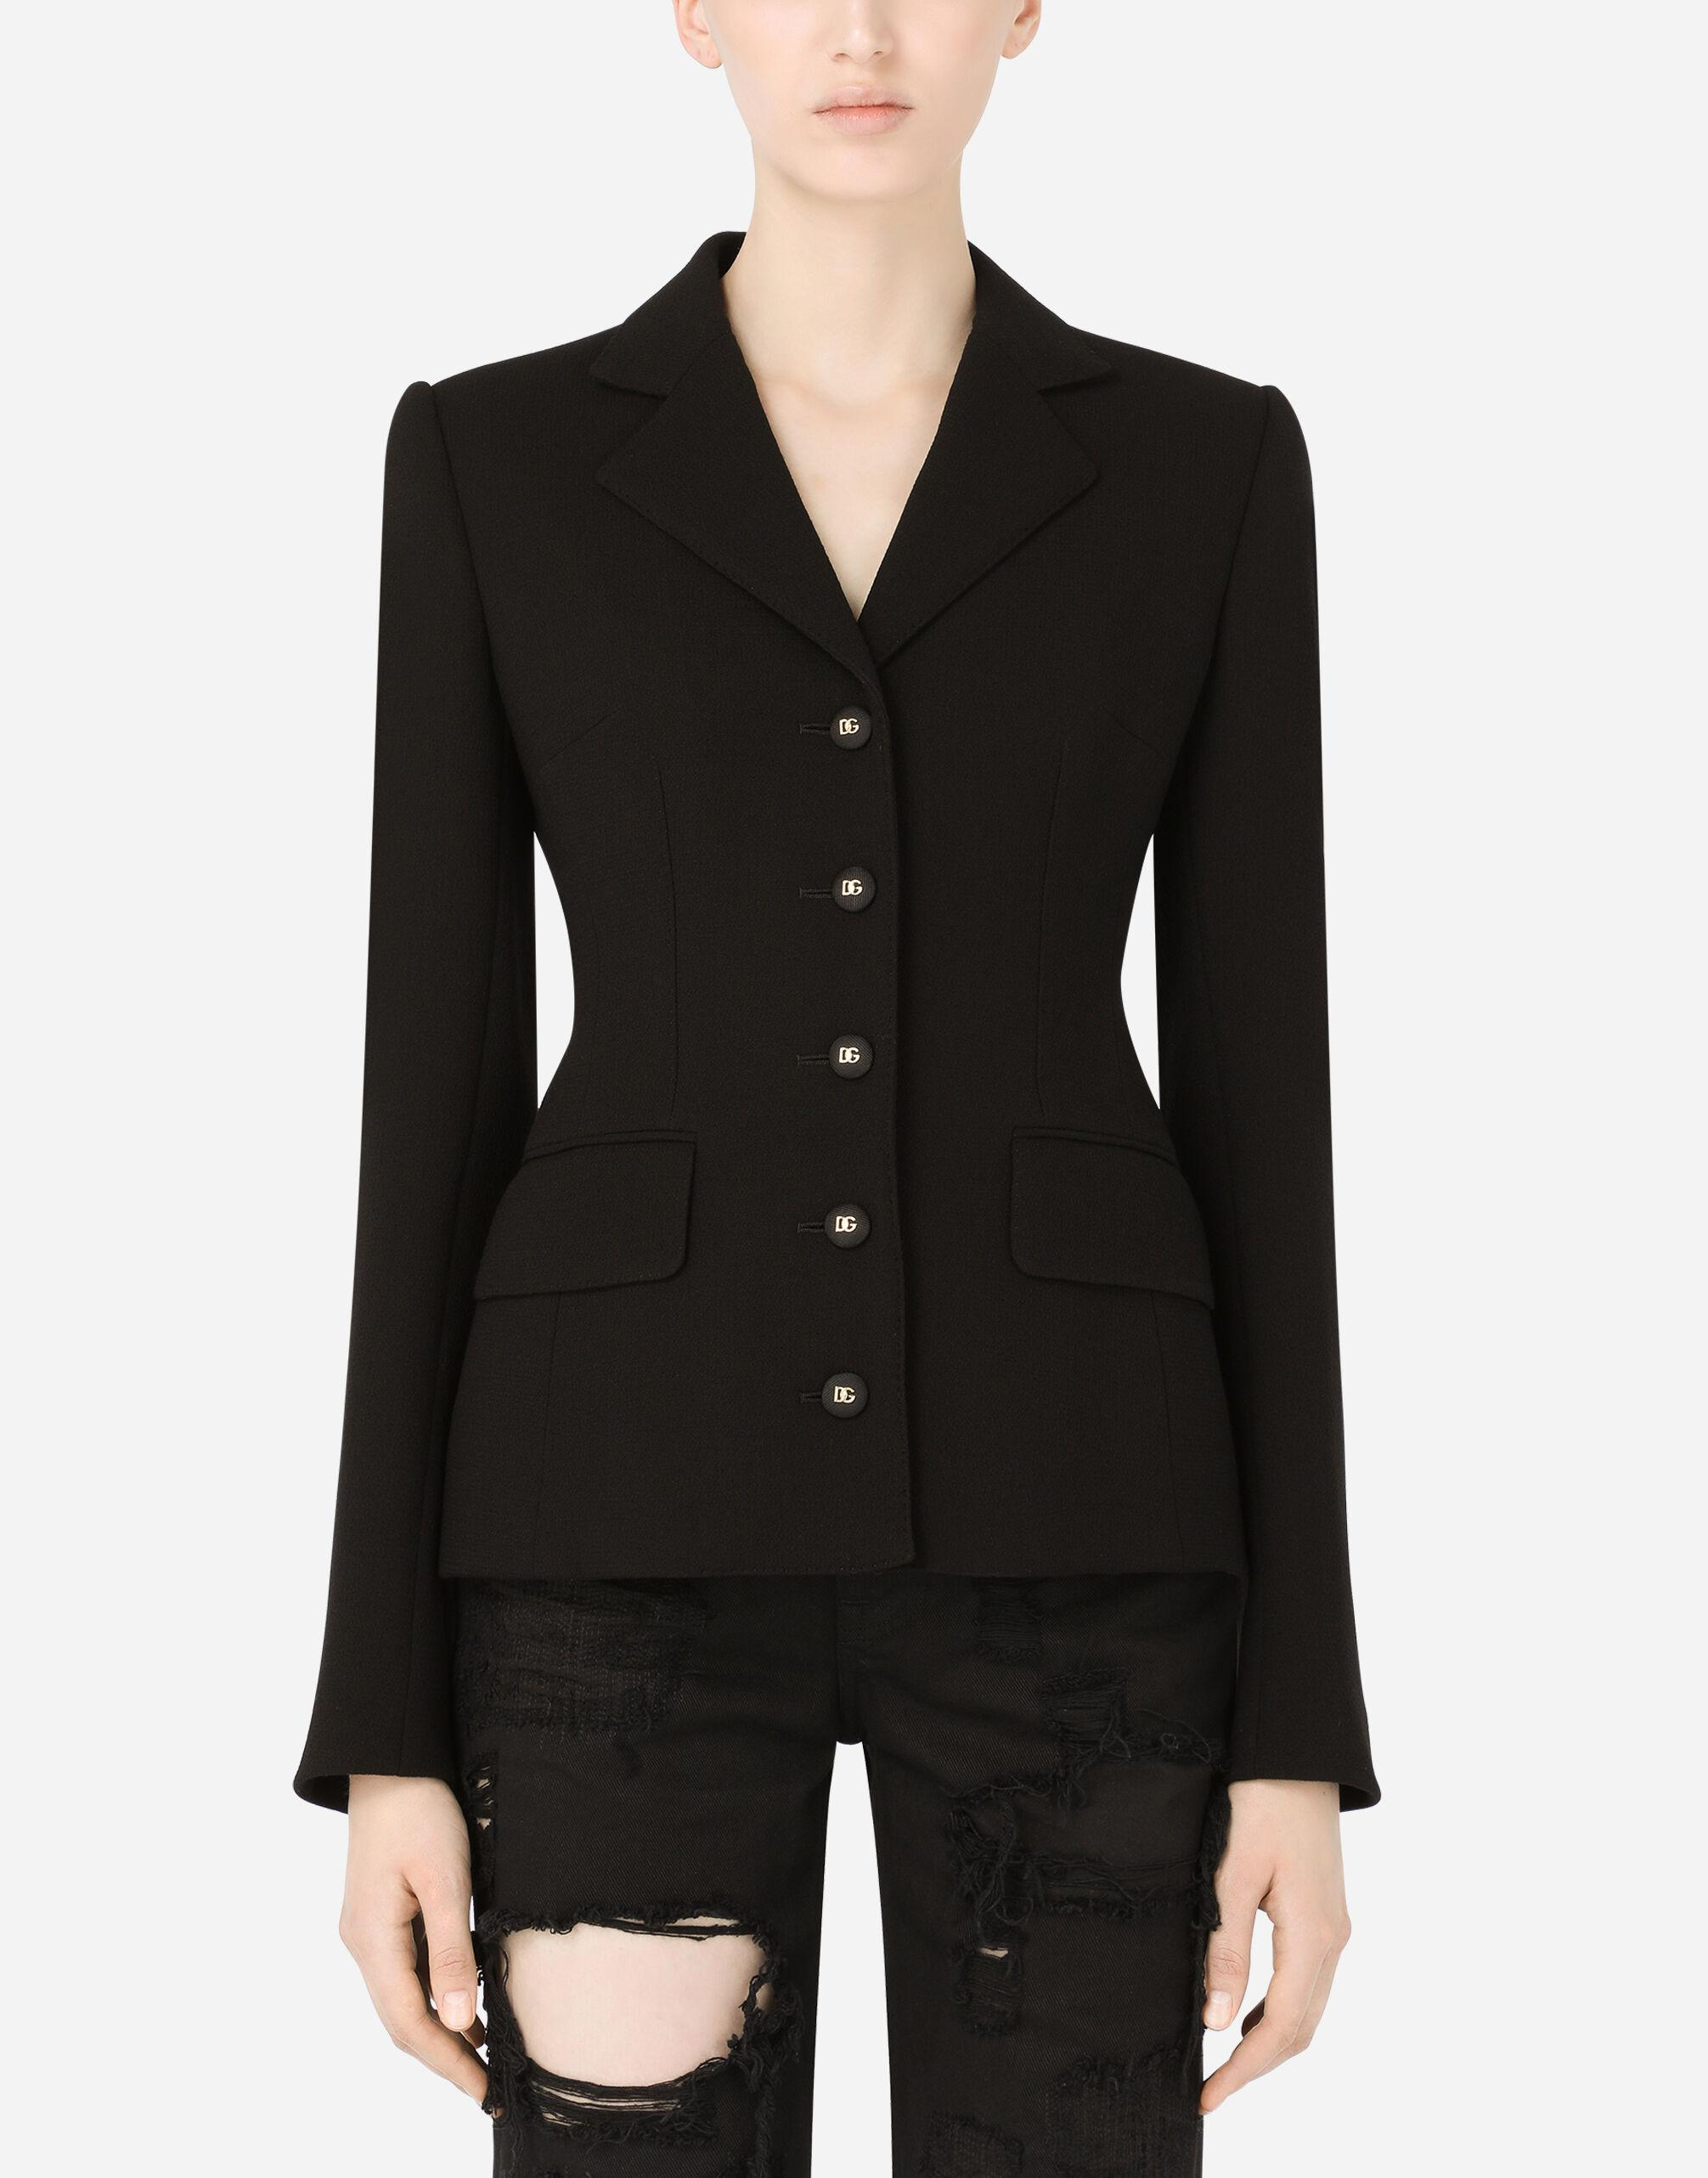 Single-breasted wool crepe Dolce jacket with DG buttons